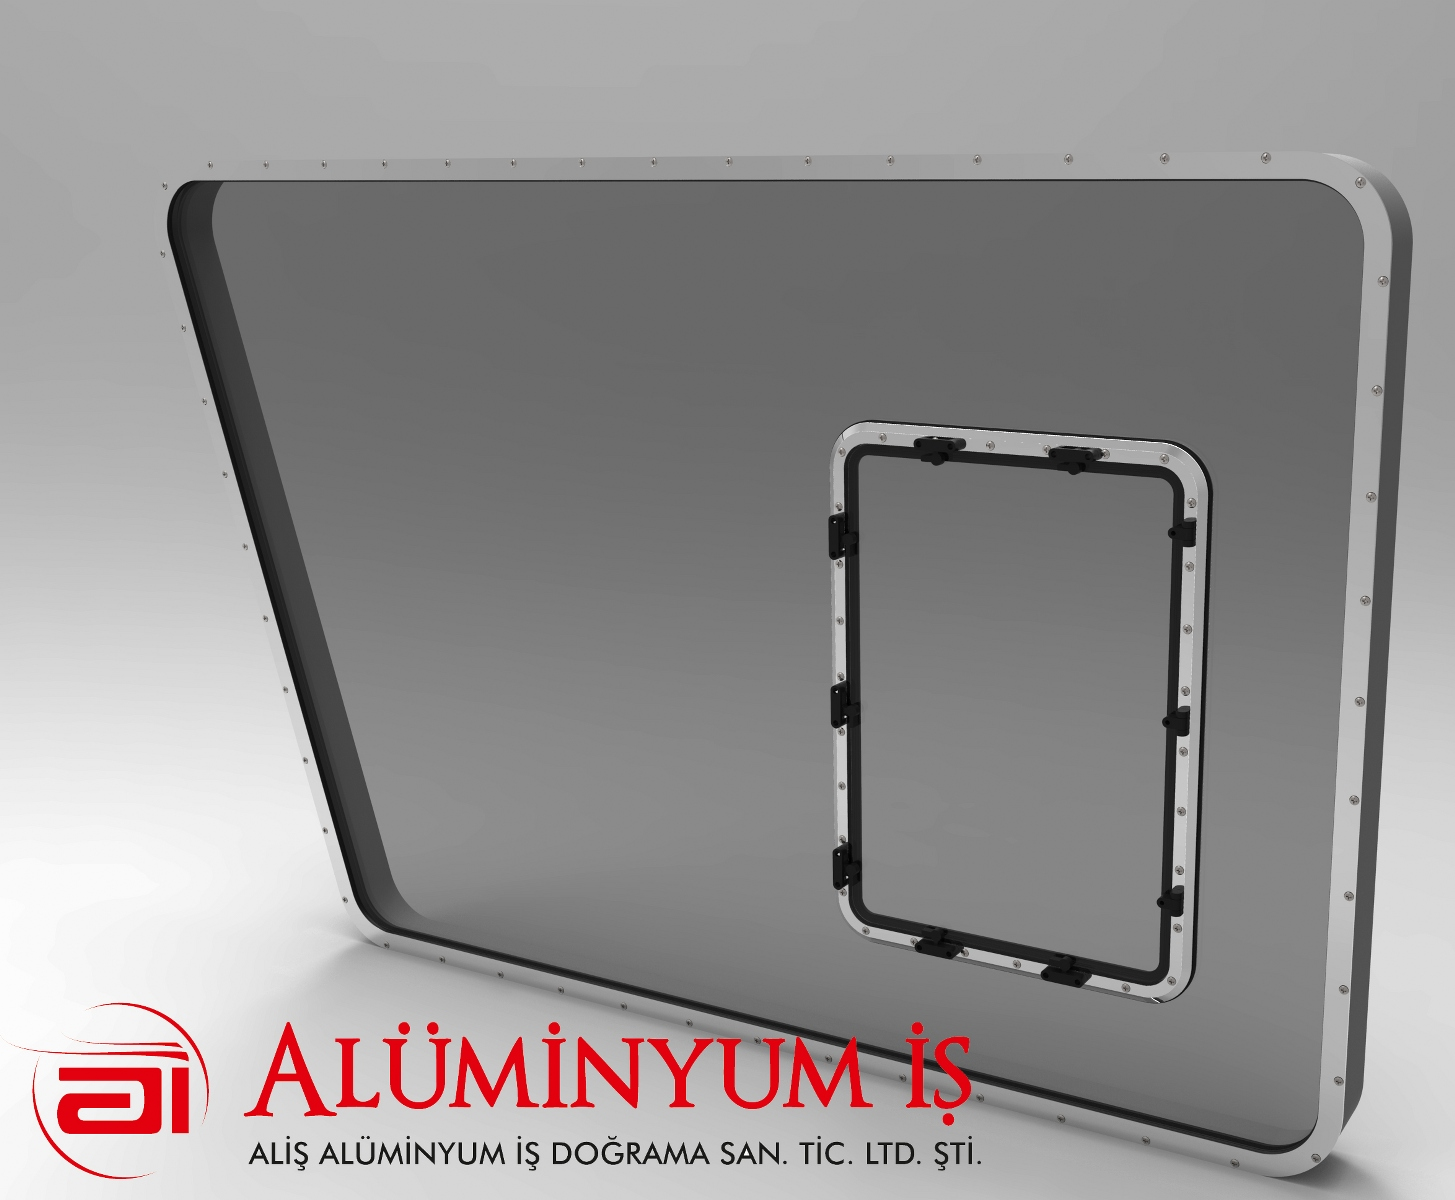 ALUMINUM FRAME IN THE MIDDLE OF THE GLASS